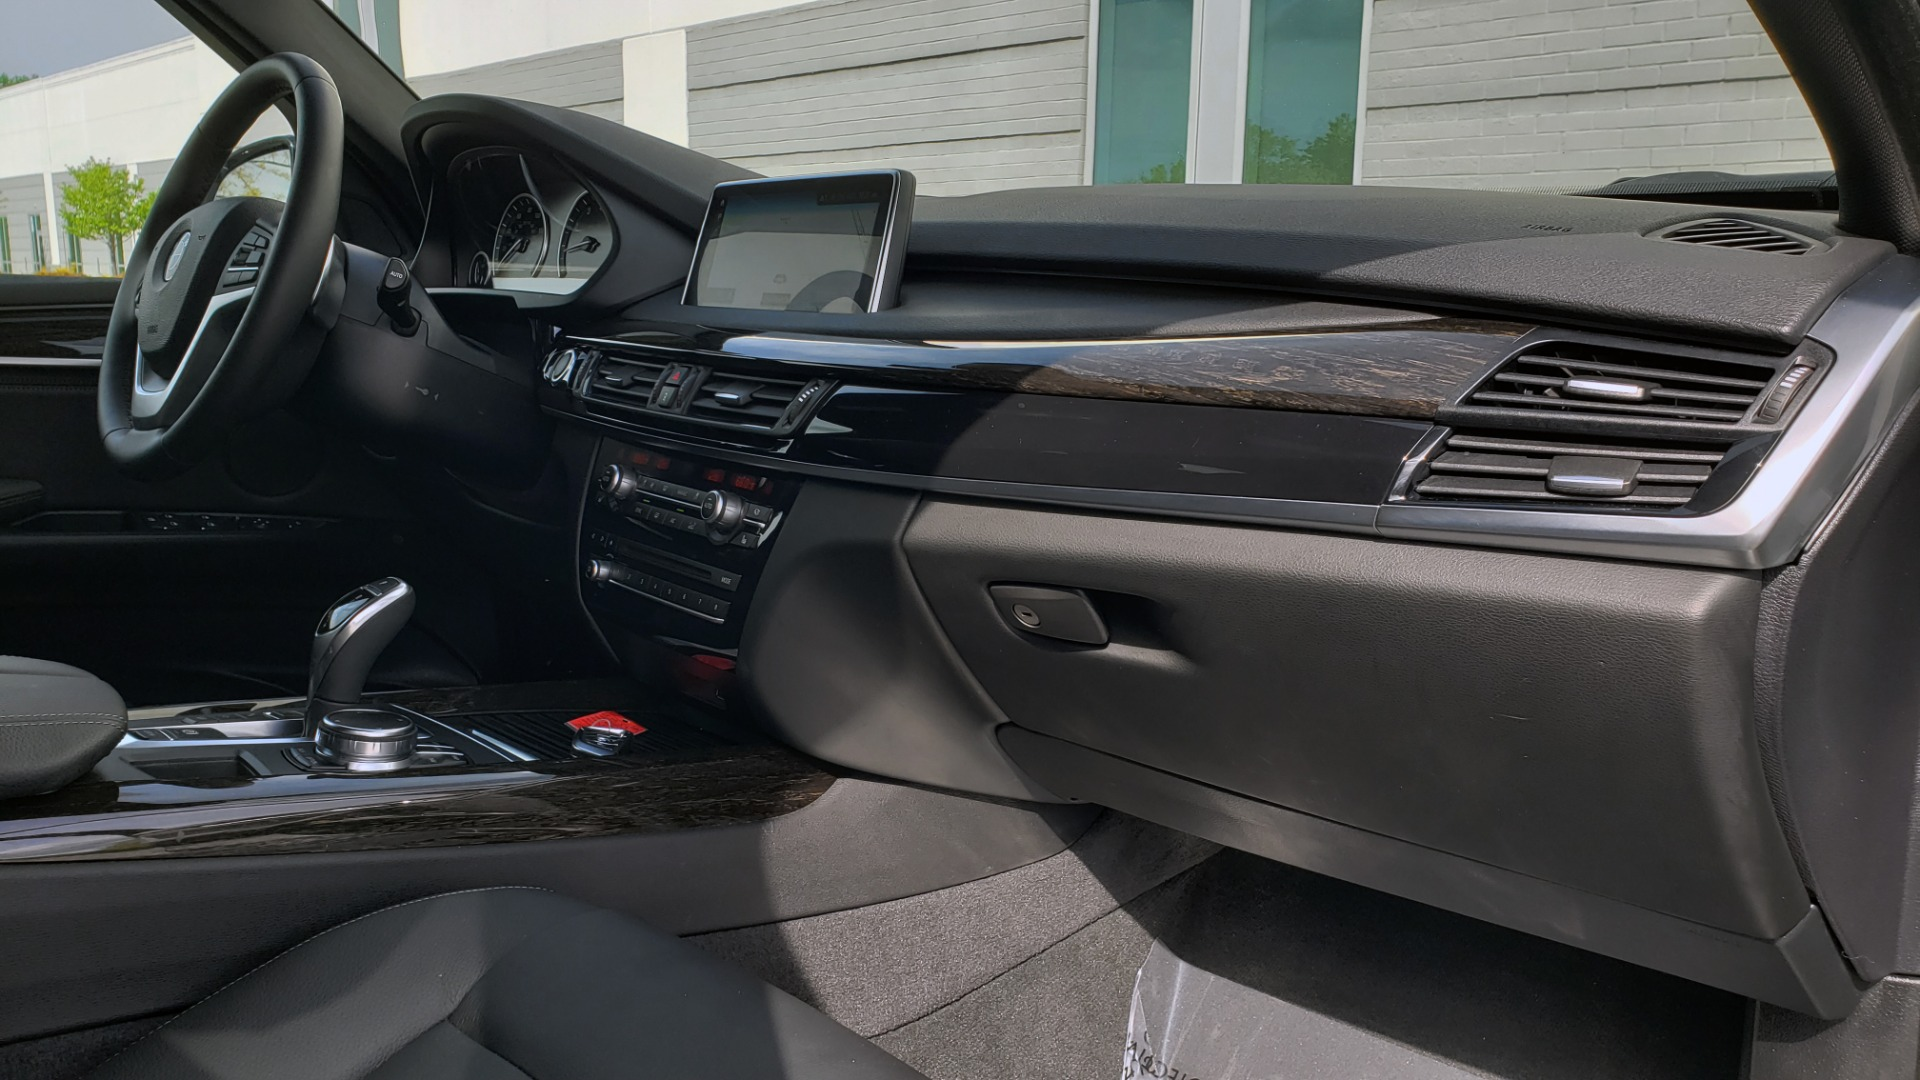 Used 2018 BMW X5 XDRIVE35I PREMIUM / NAV / PANO-ROOF / DRIVER ASST / REARVIEW for sale Sold at Formula Imports in Charlotte NC 28227 73